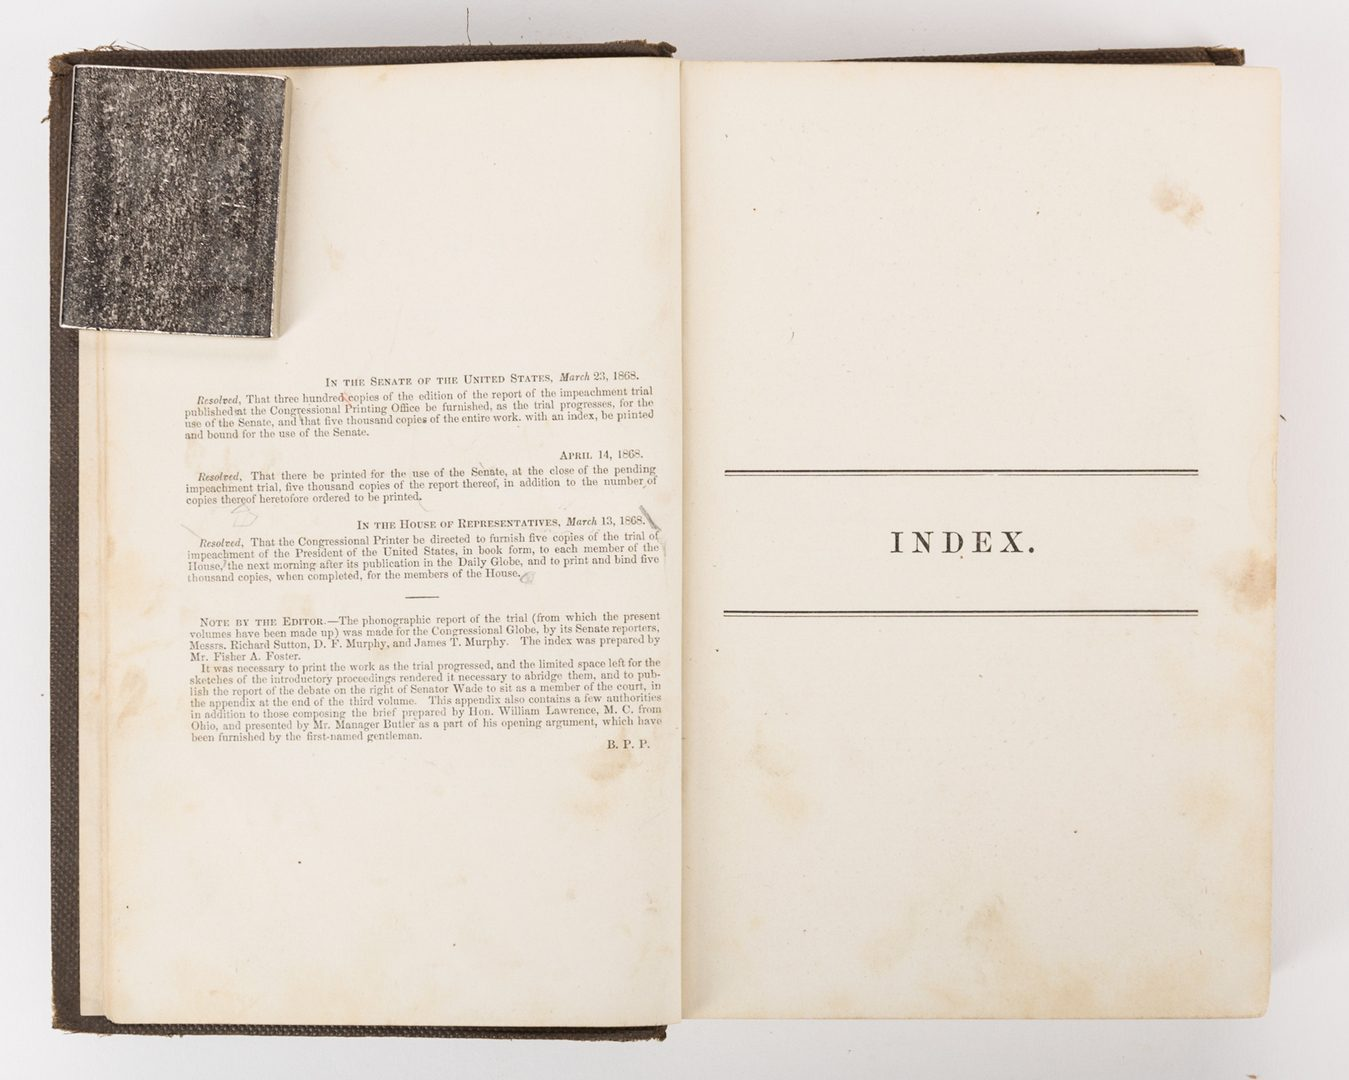 Lot 227: President Andrew Johnson Impeachment Archive, 9 items